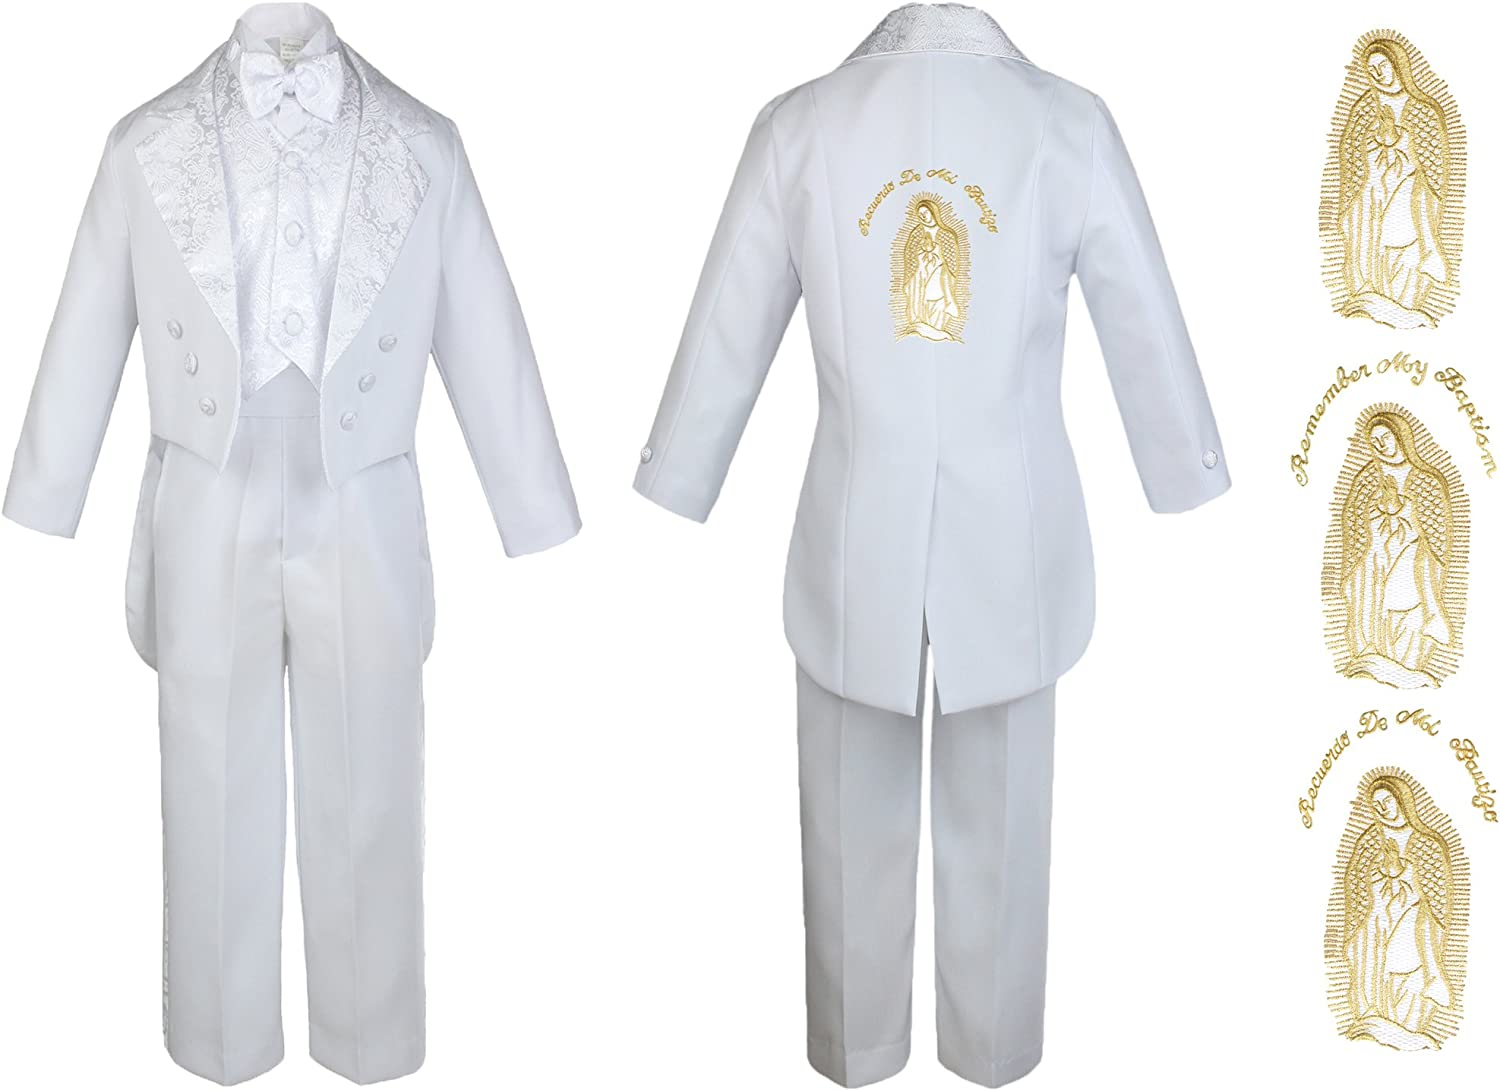 New Born Baby Boy Christening Baptism White Tail Max 45% OFF Suit Mary Maria Max 65% OFF